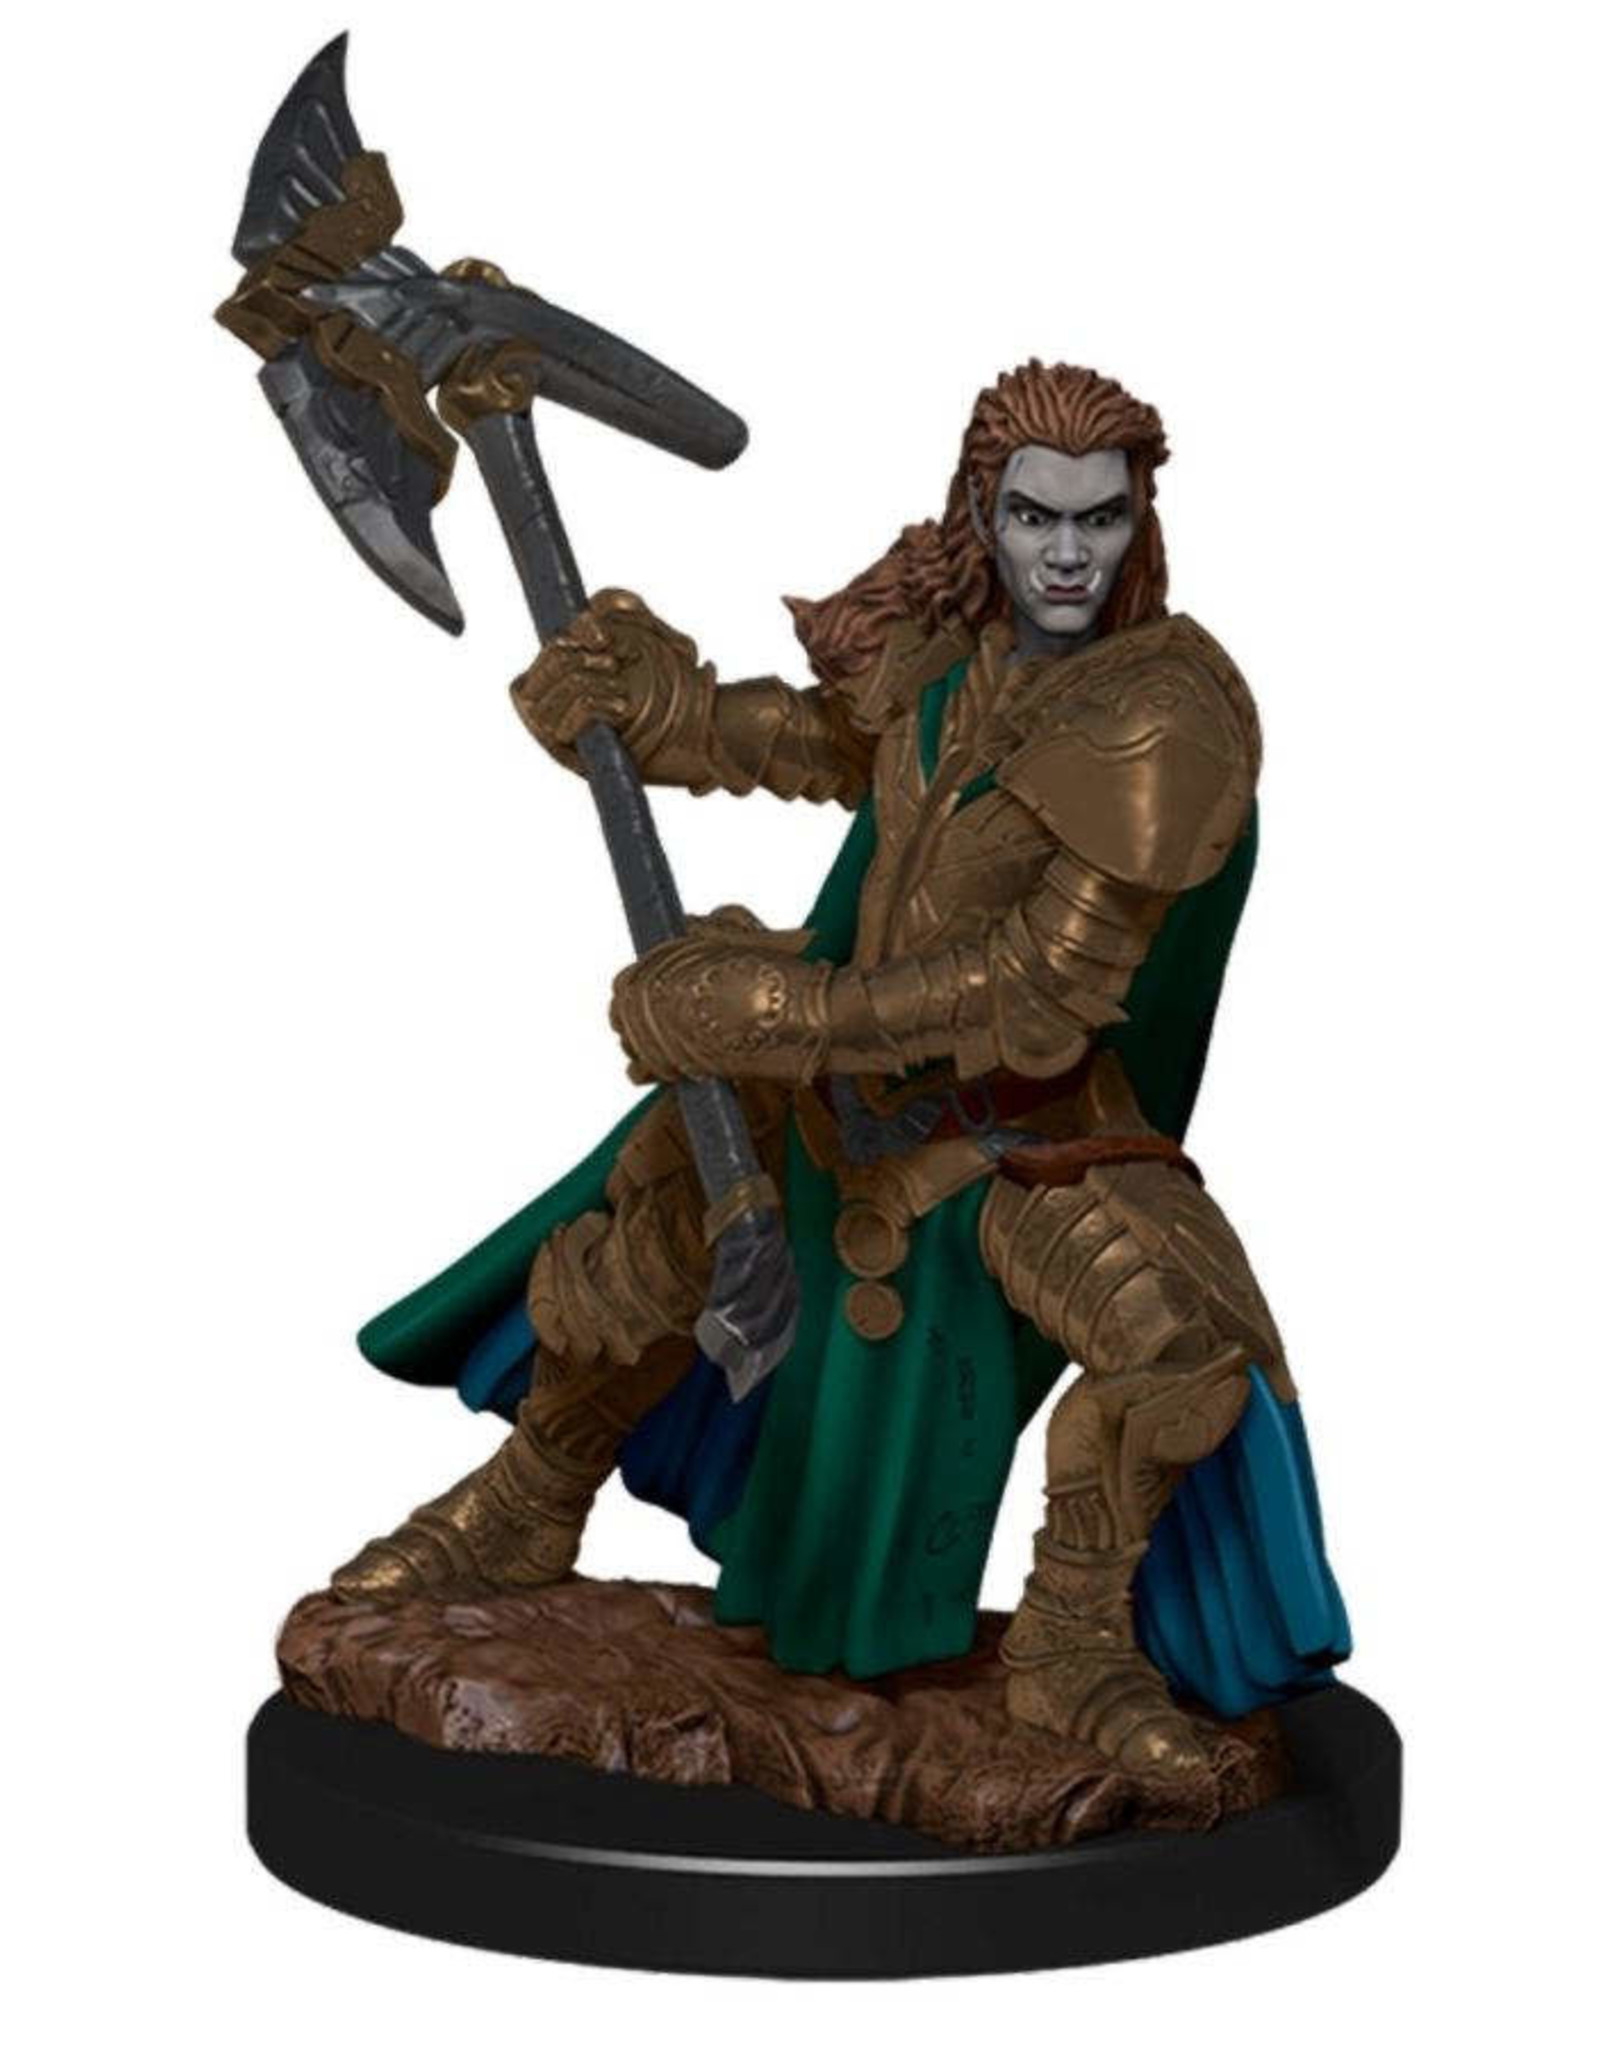 Wizkids Dungeons And Dragons: Icons Of The Realm Premium Figure (wave 4): Half-orc Fighter